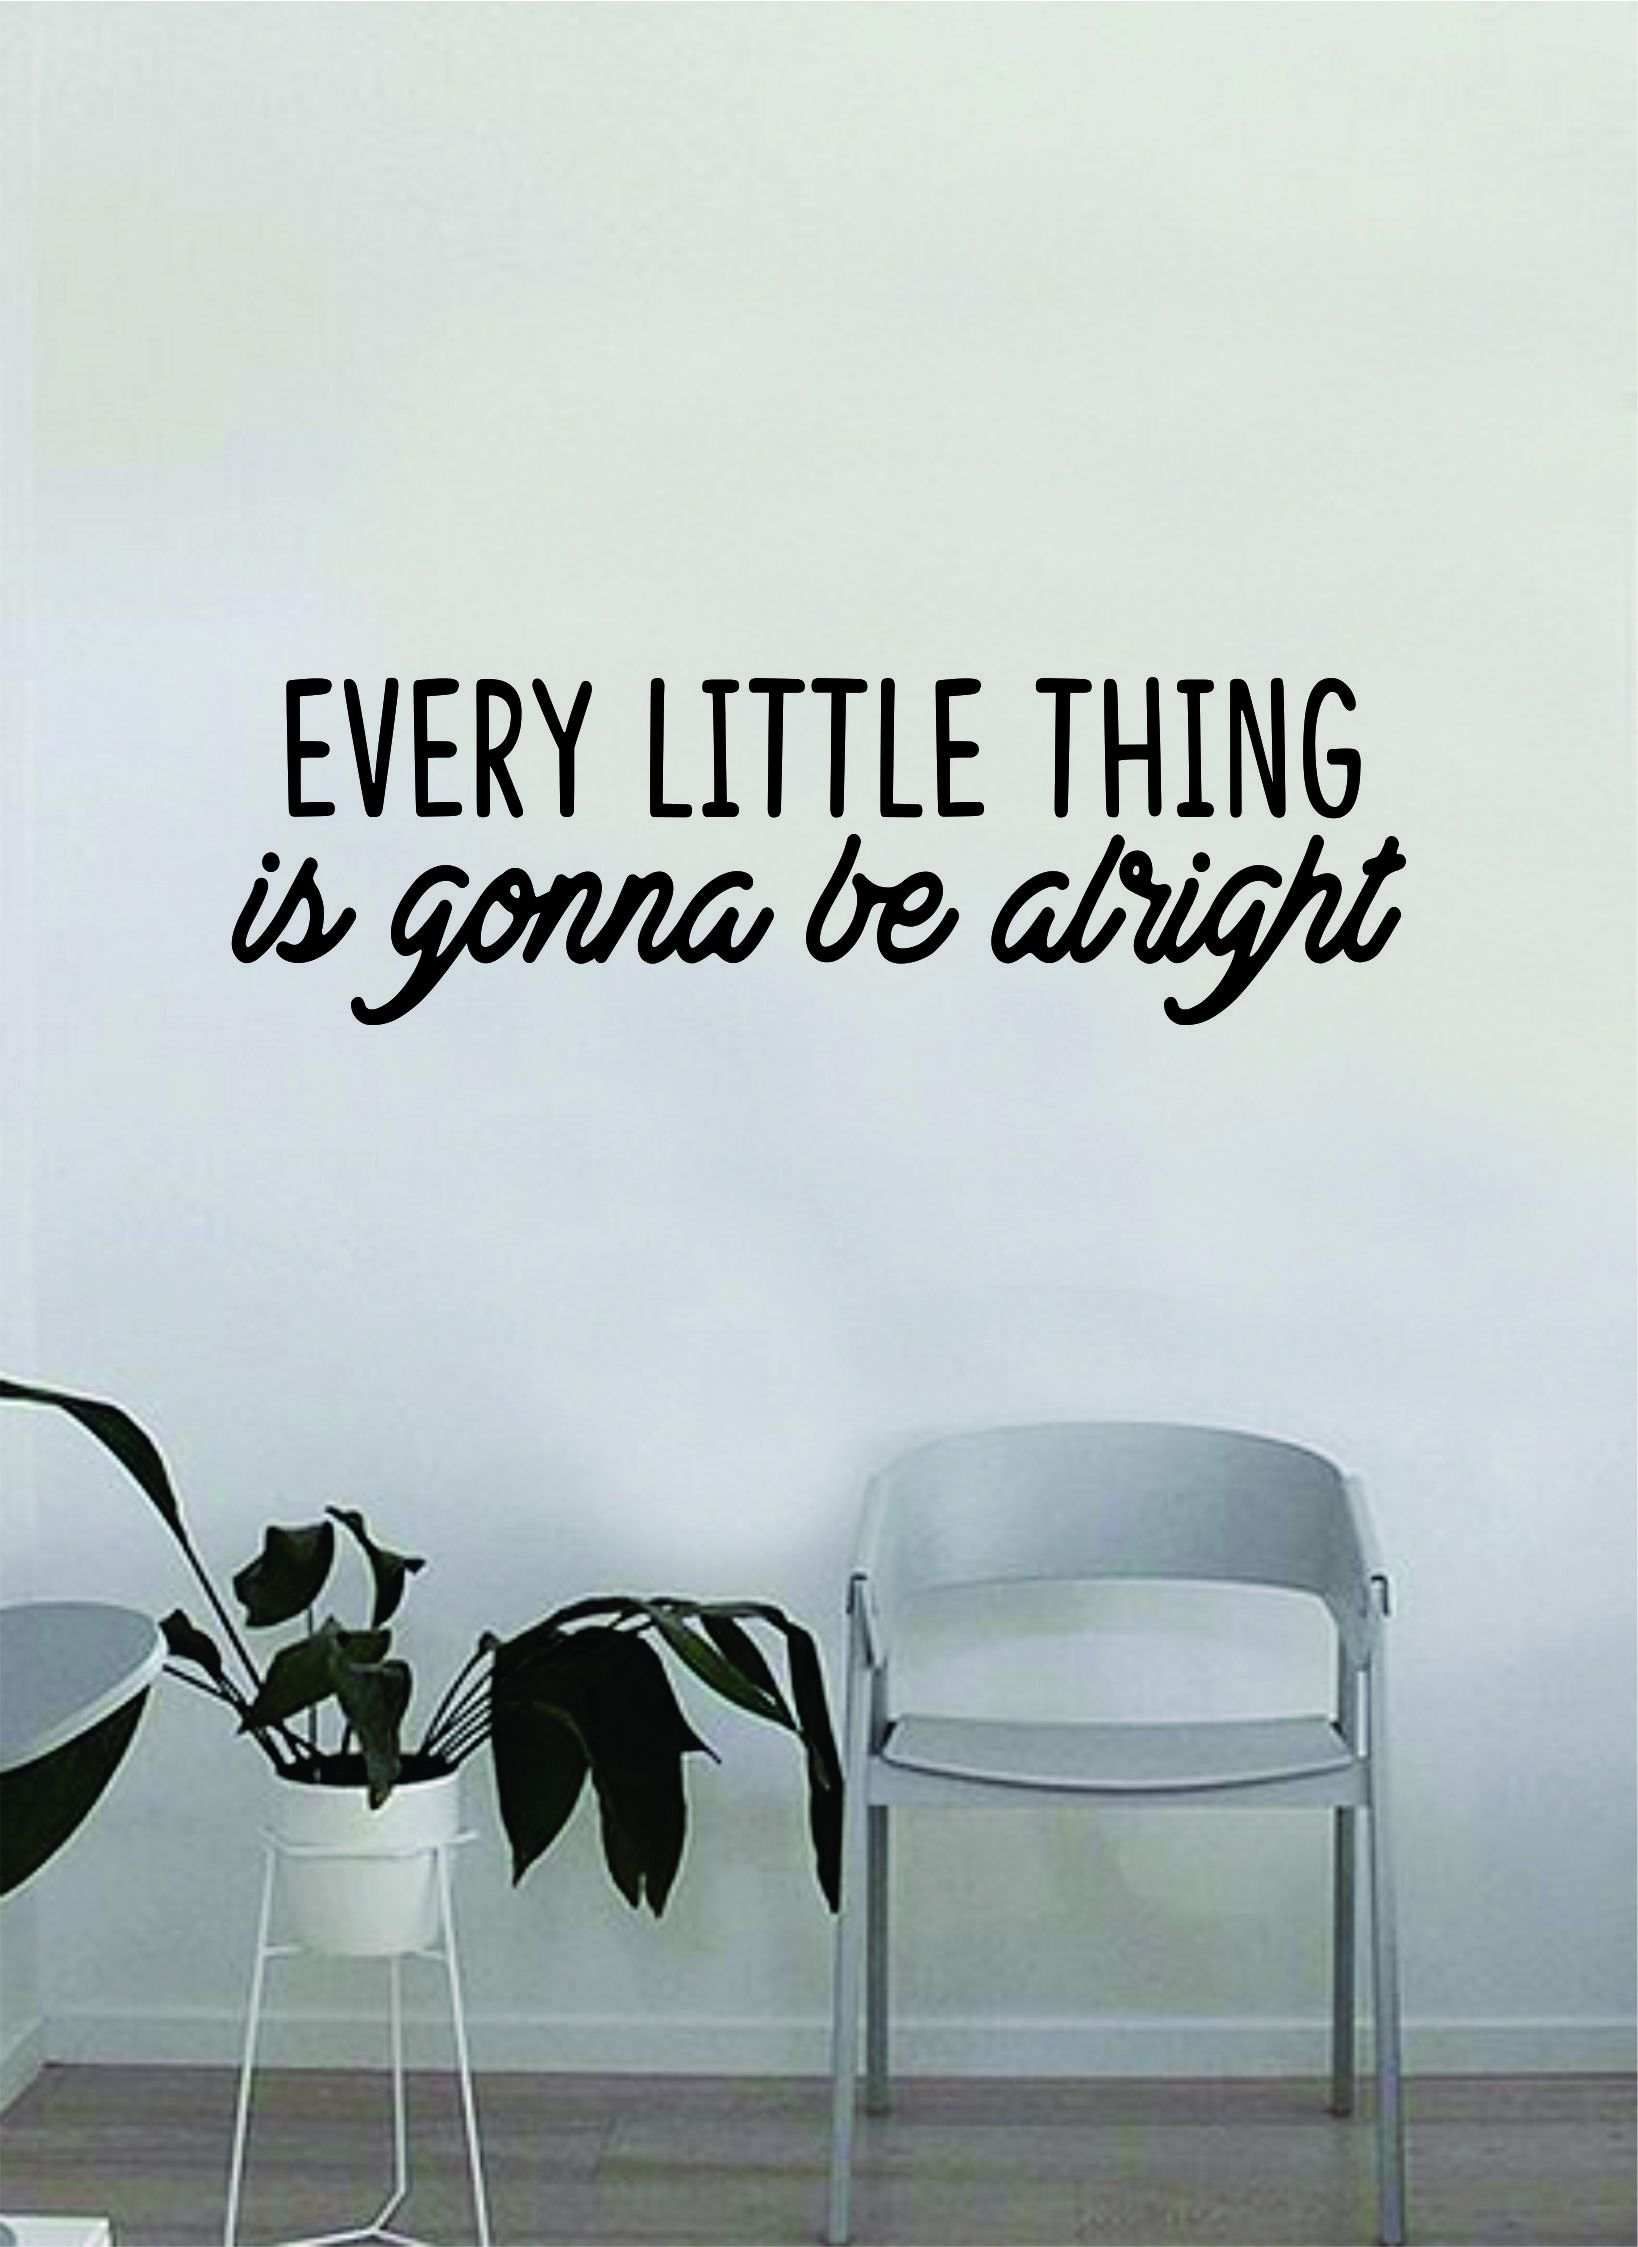 Every Little Thing V5 Bob Marley Quote Wall Decal Sticker